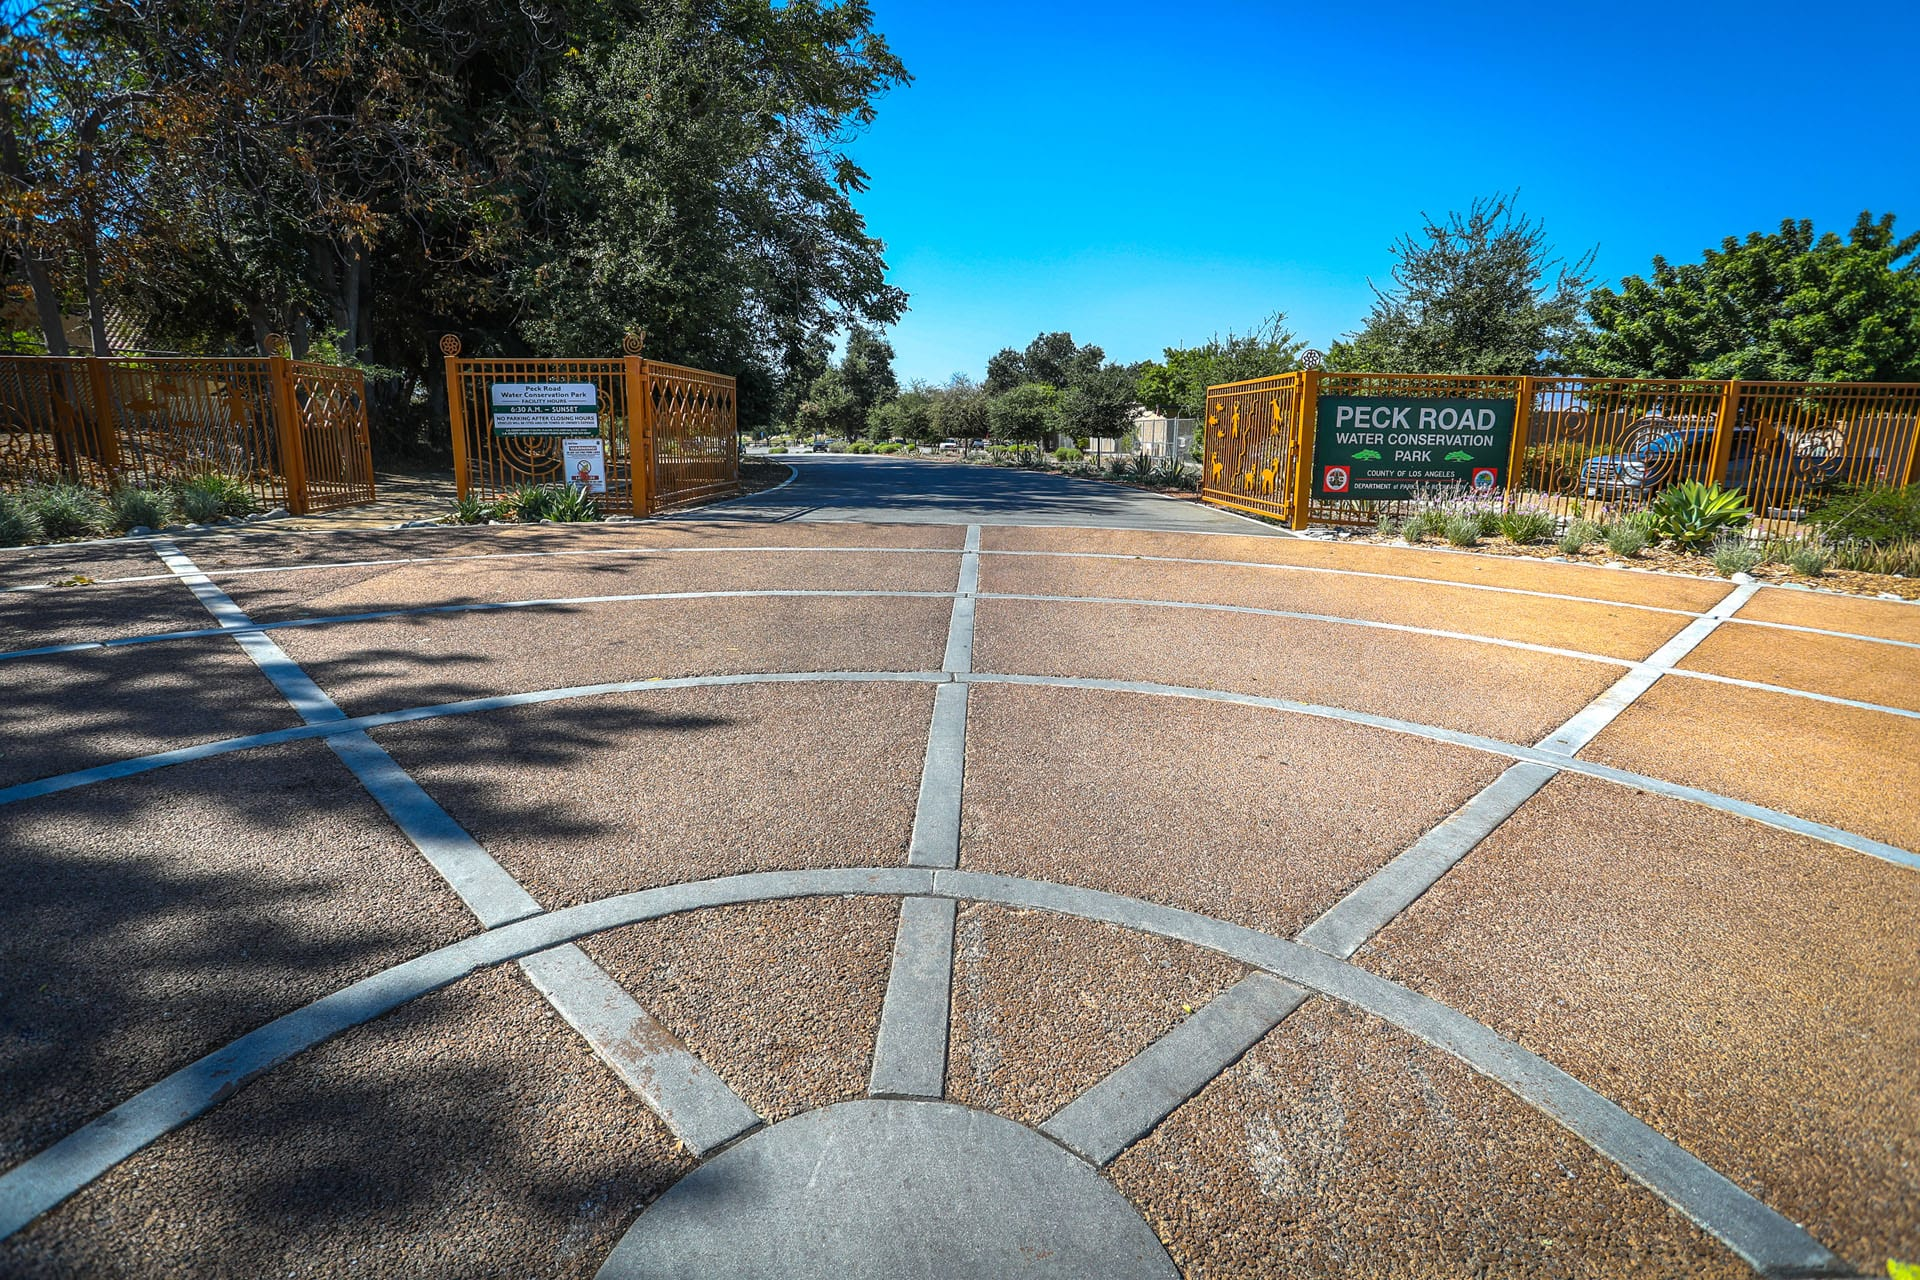 Elaborate pavement layout in front of gate entrance